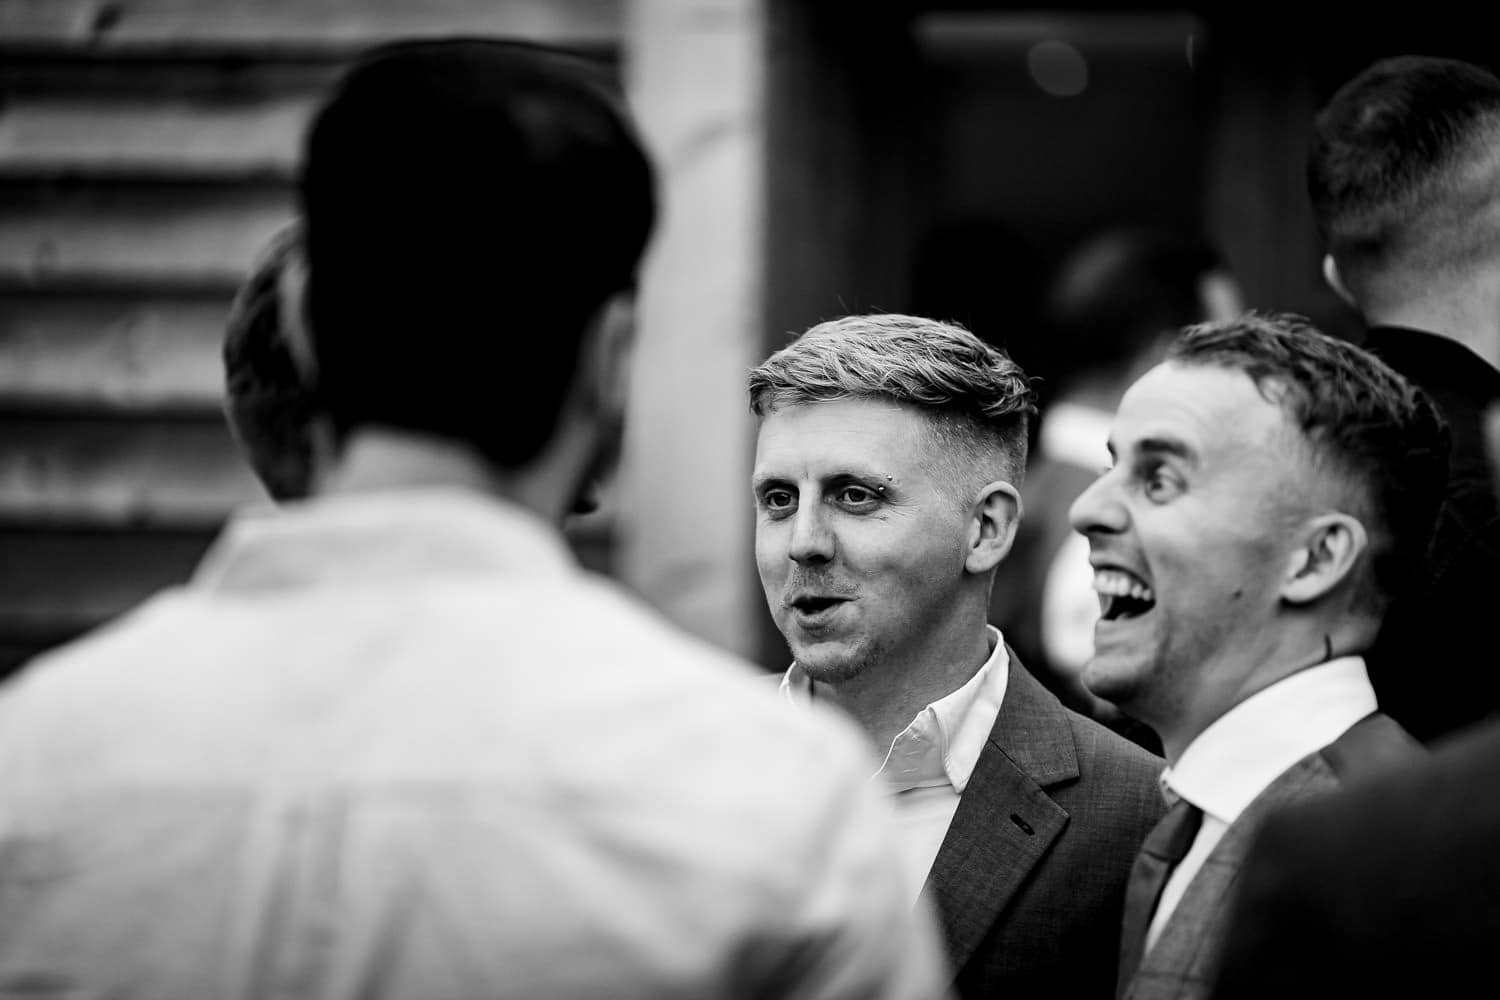 candid wedding photography in warwickshire by chapter one photography